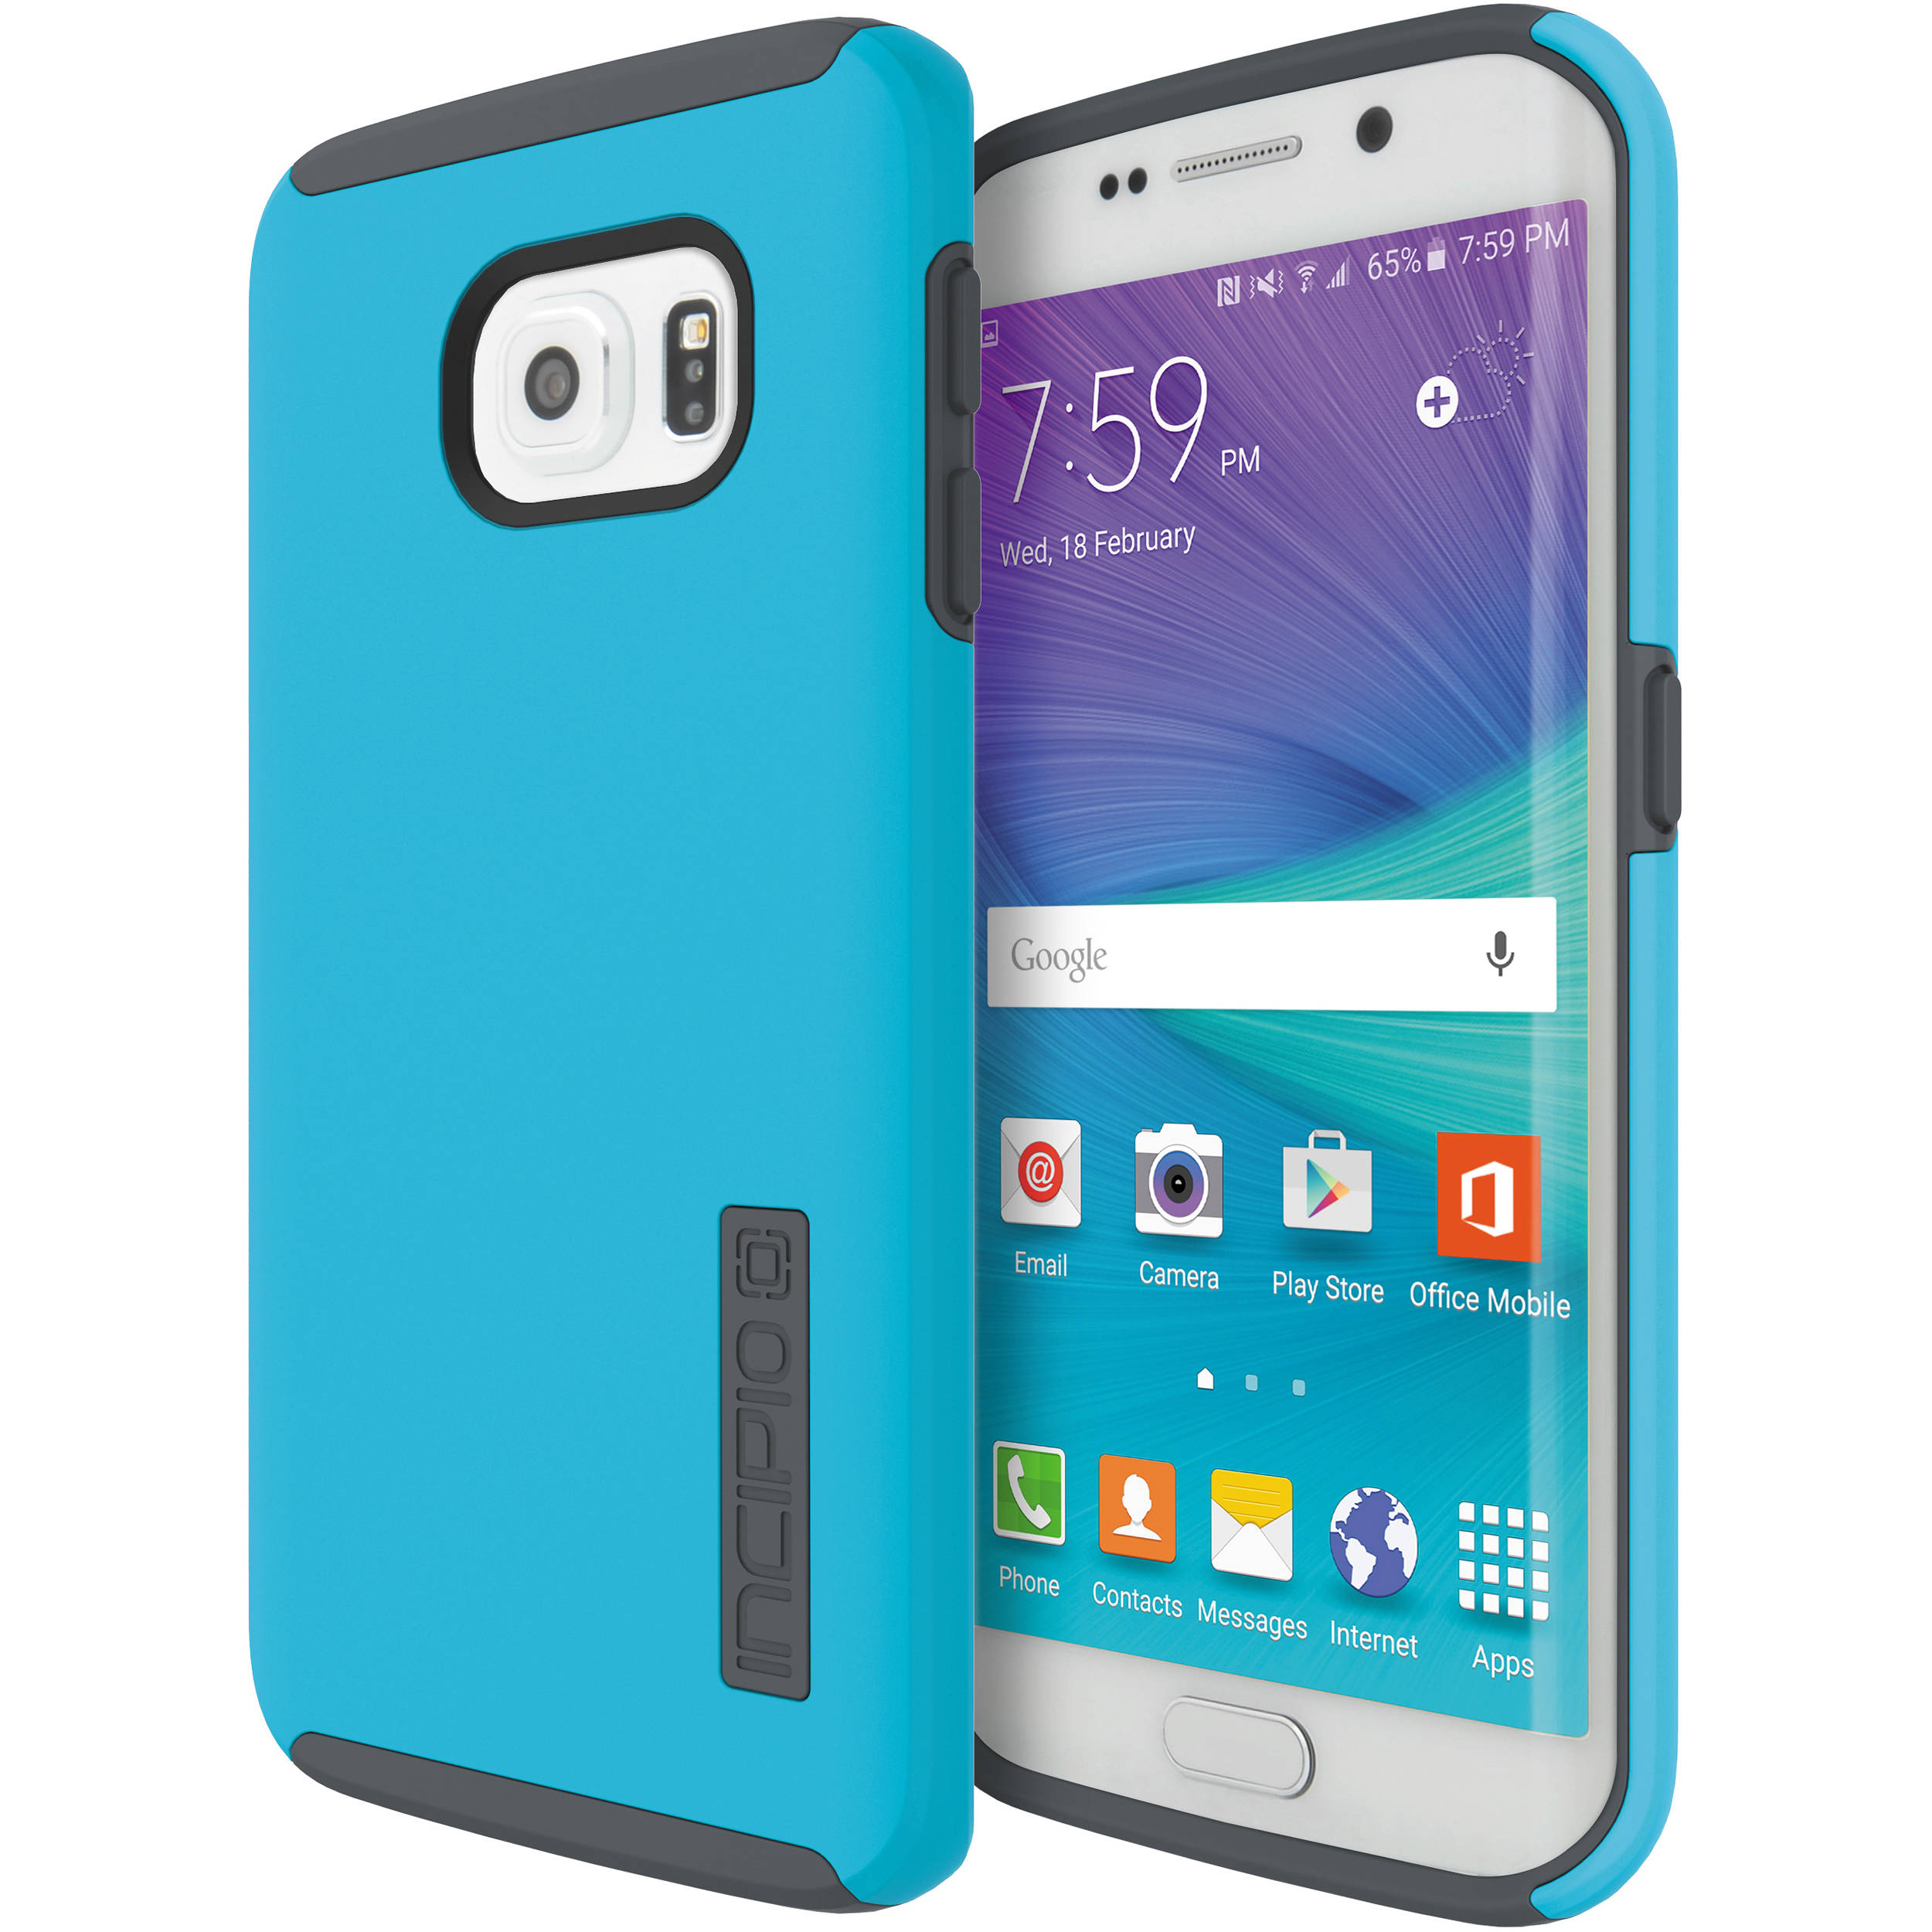 online store 3c849 99732 Incipio DualPro Case for Galaxy S6 (Neon Blue/Charcoal)